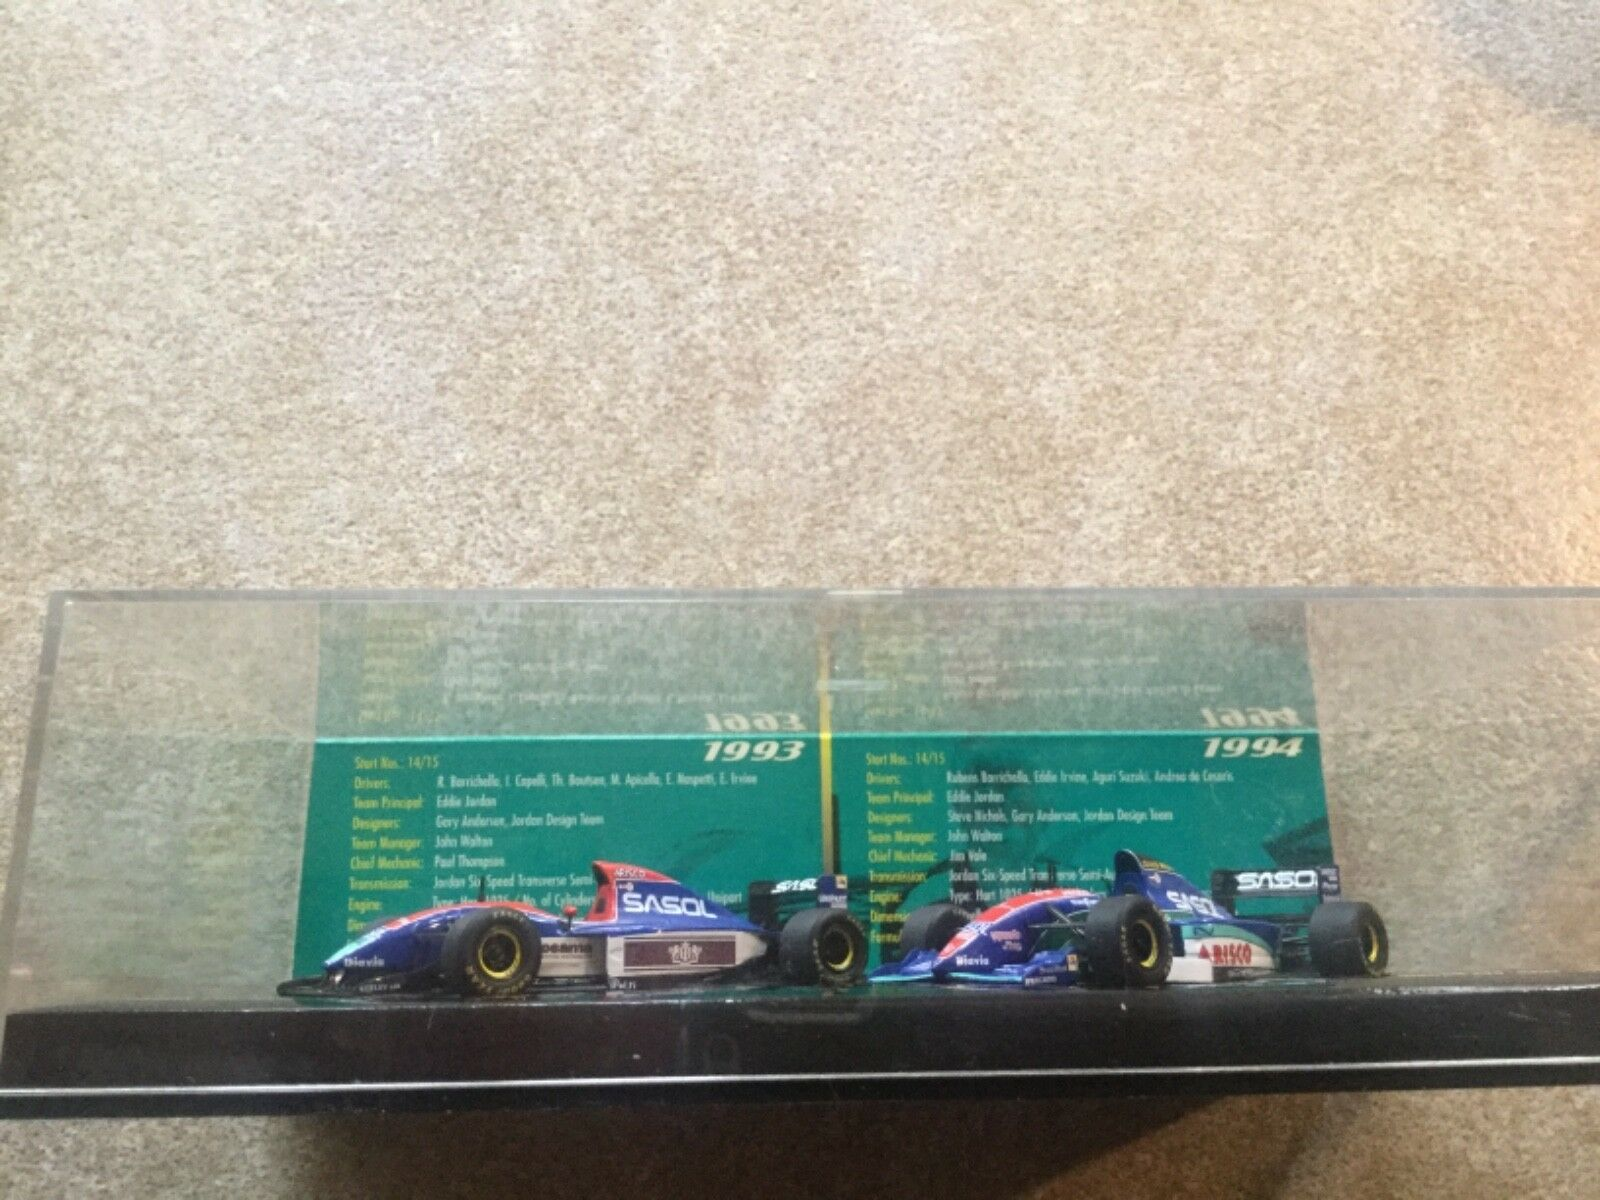 MINICHAMPS JORDAN HART 1993 1994 Set Model Cars